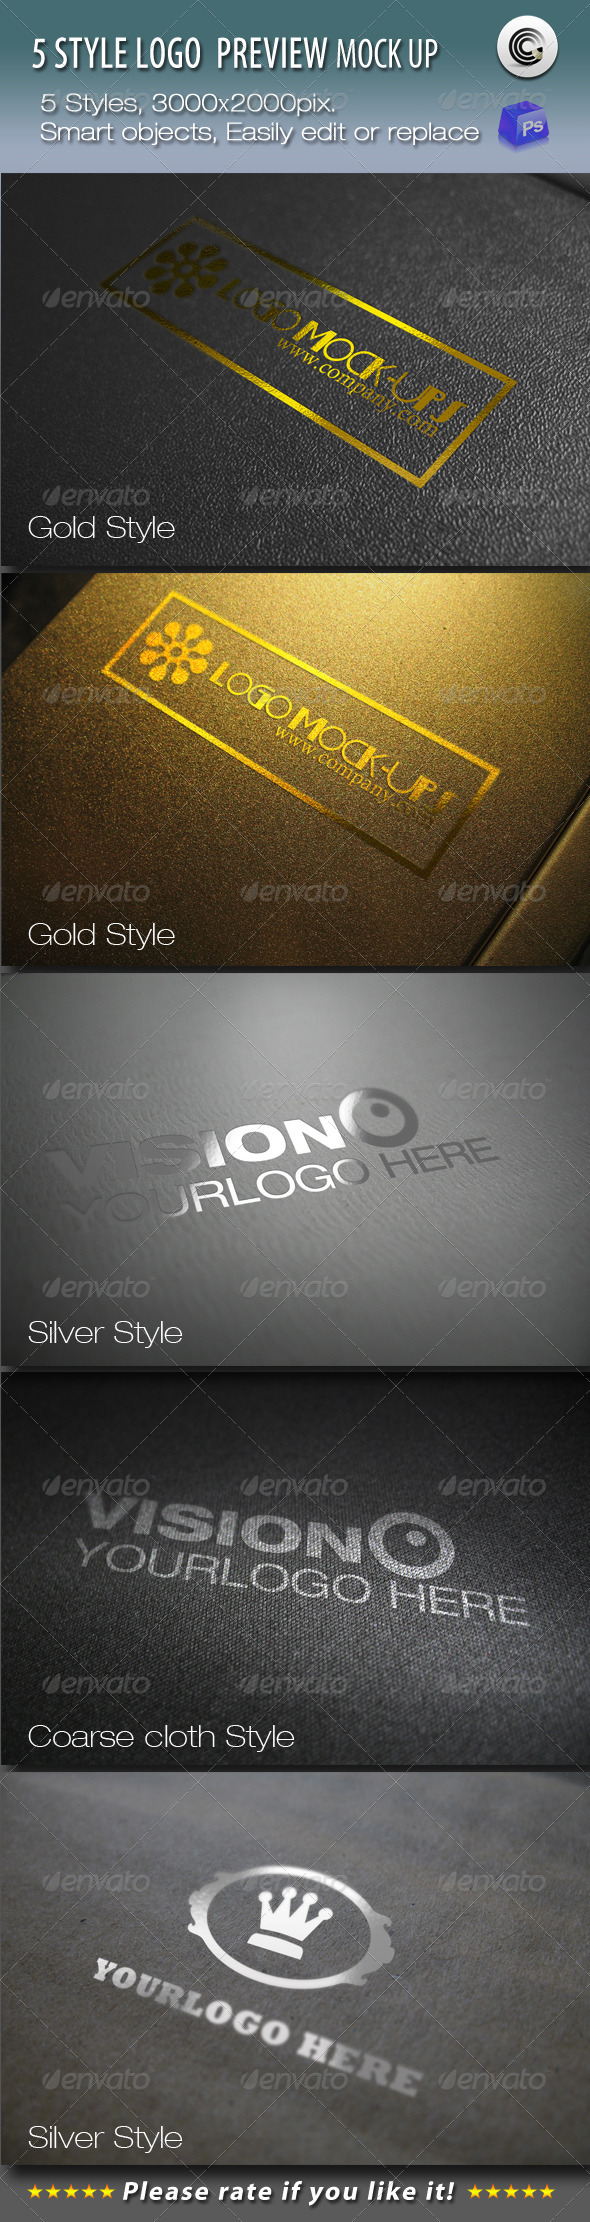 5 Styles Logo Preview Mock-ups - Logo Product Mock-Ups